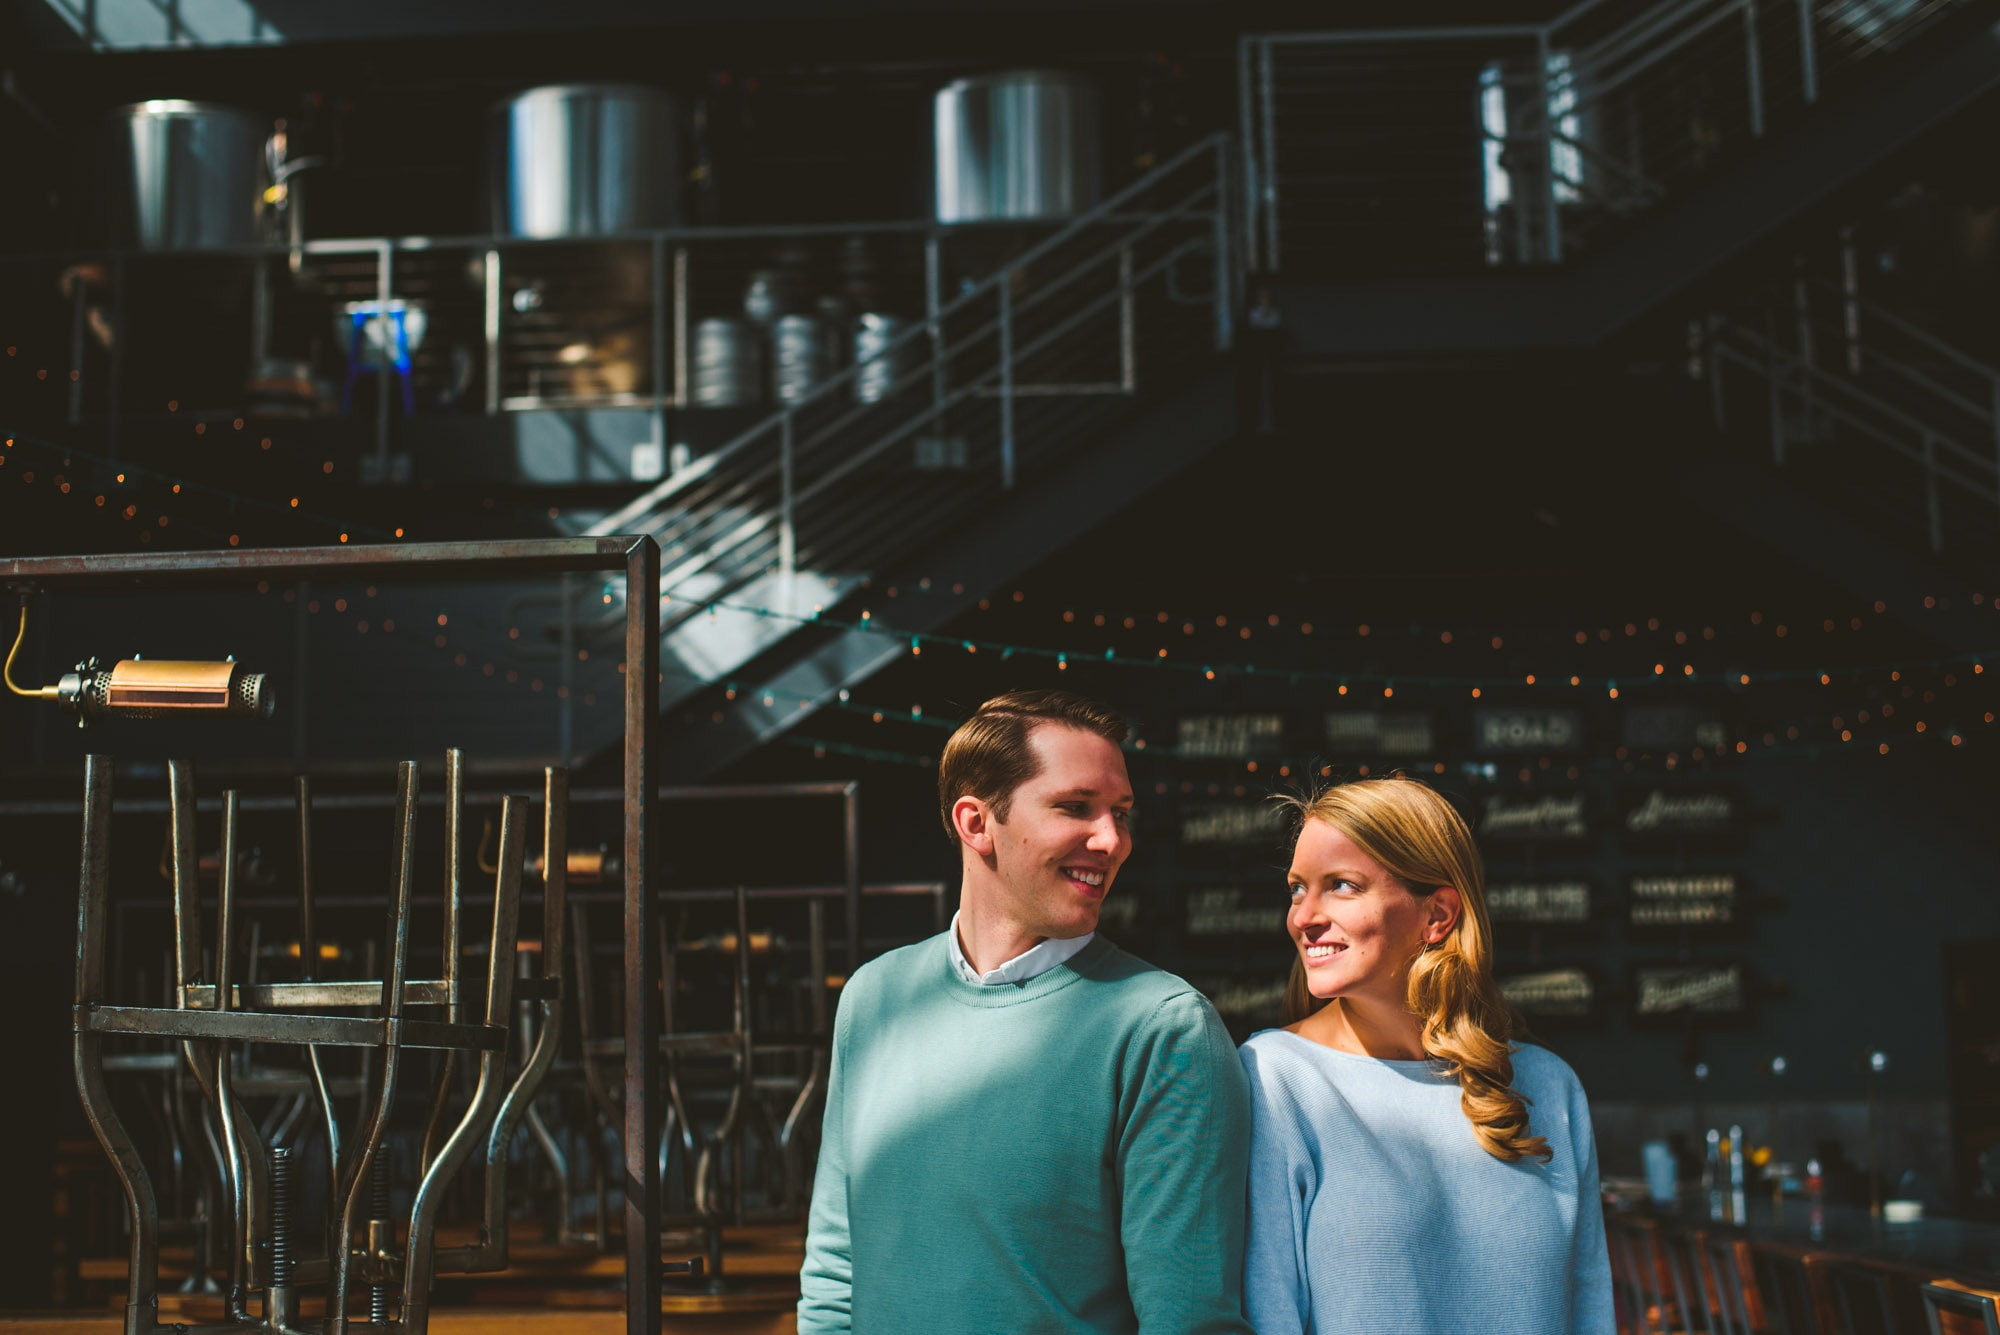 blue jacket brewing company engagement session in Washington DC